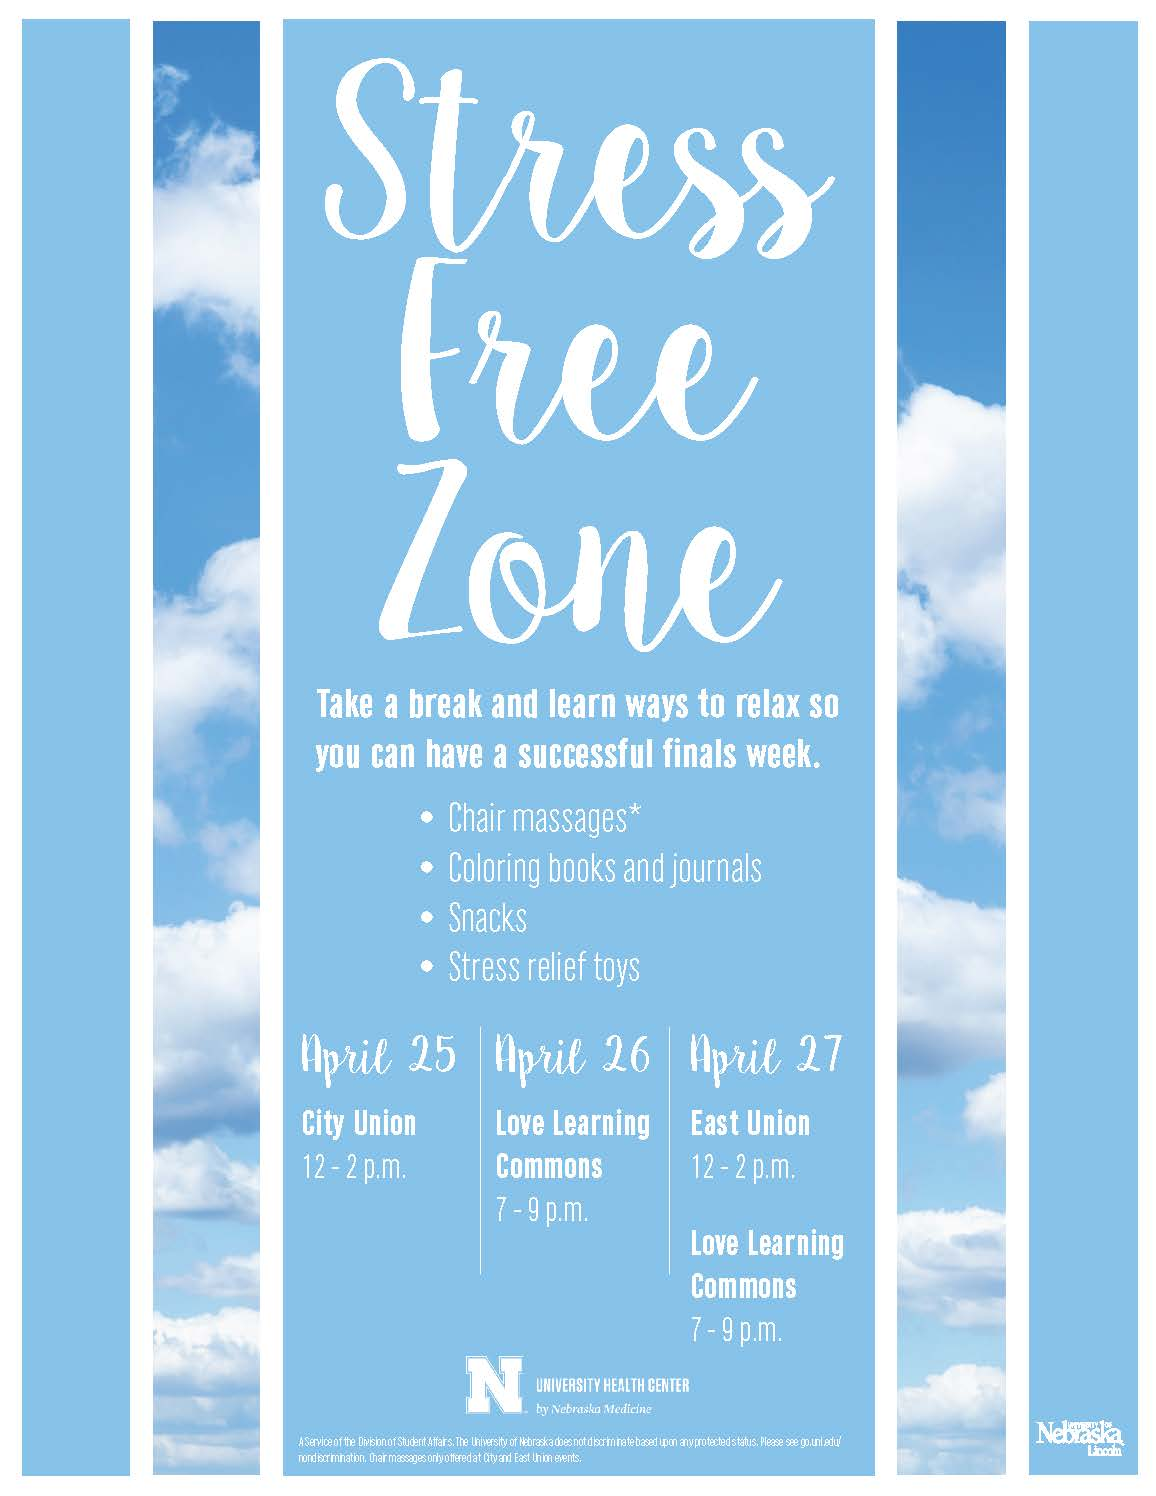 Stress Free Zone flier